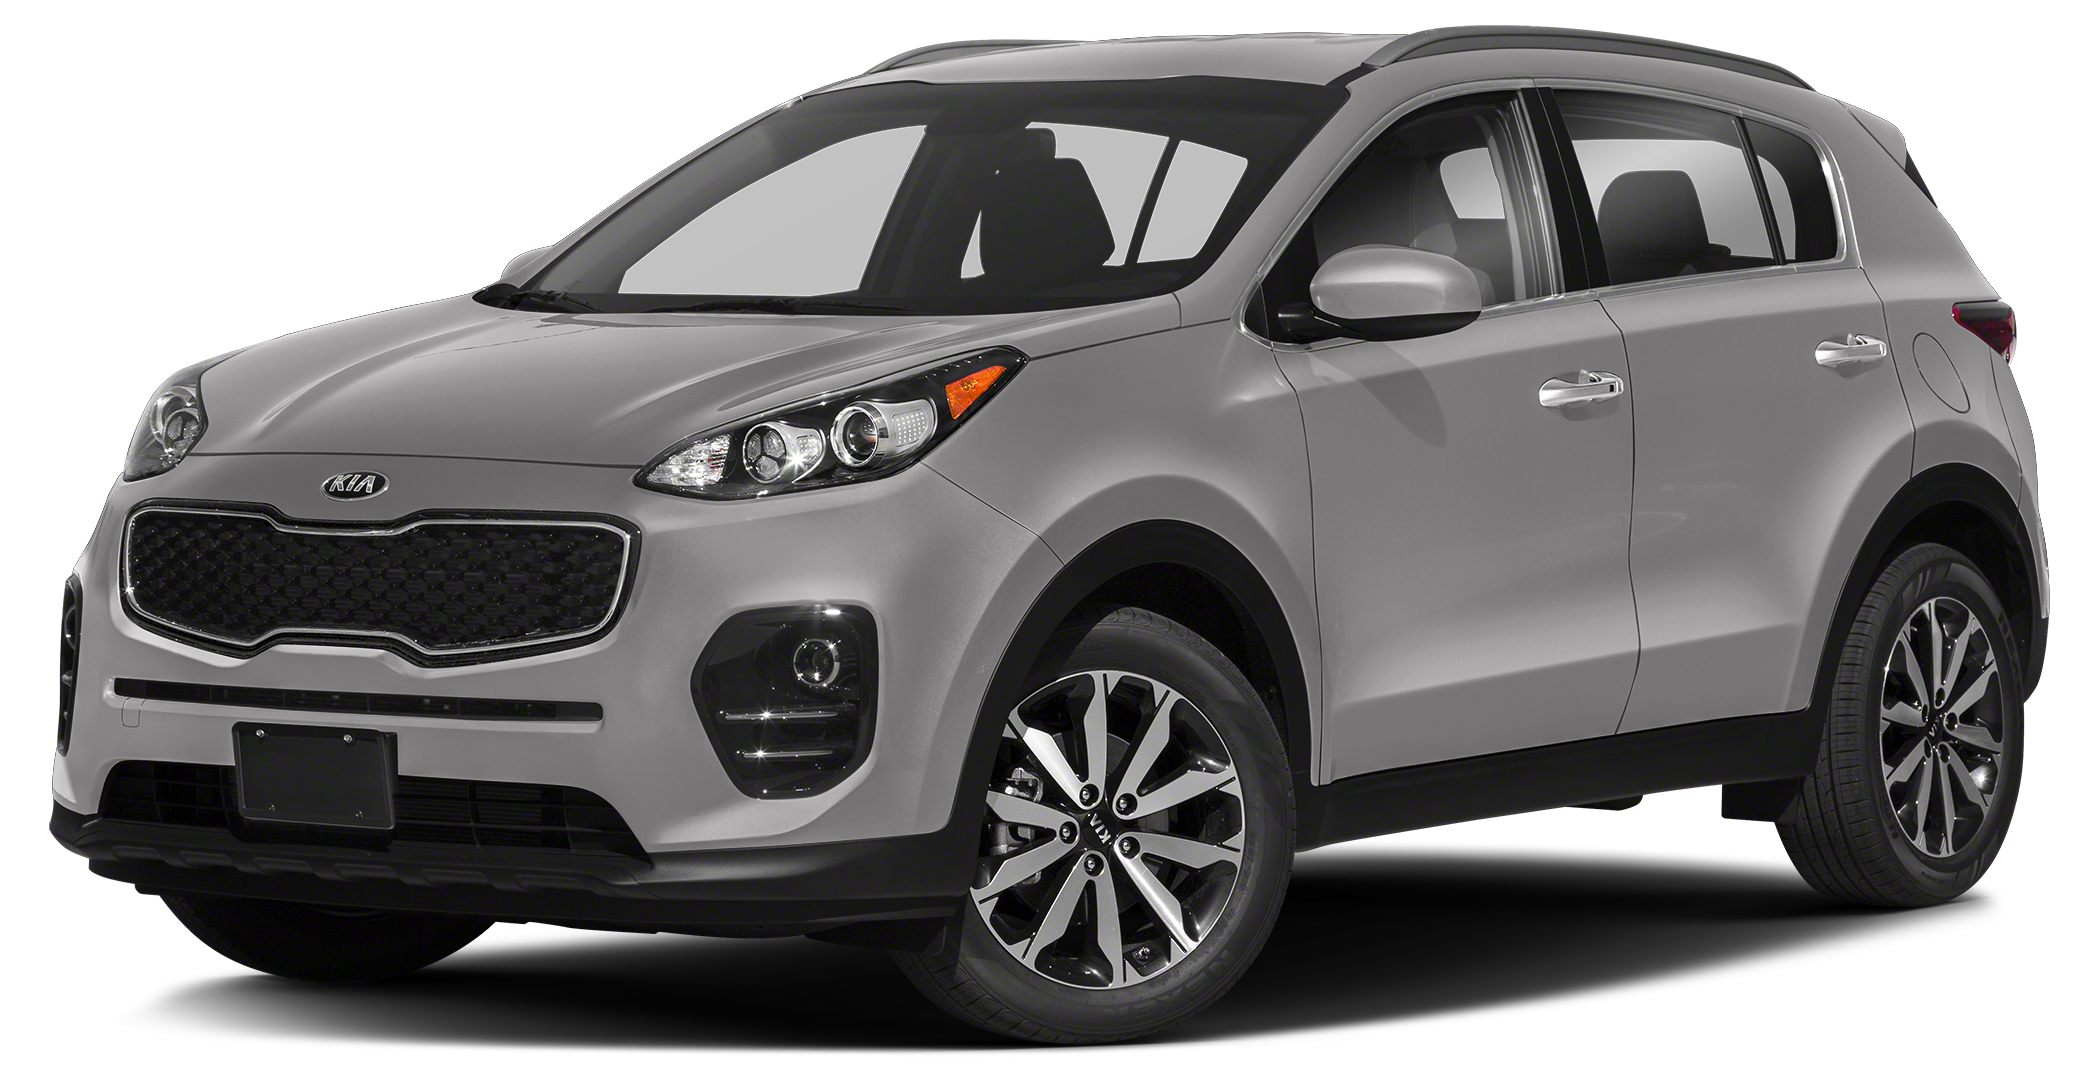 jeep cherokee limited vs chevrolet equinox premier vs ford. Black Bedroom Furniture Sets. Home Design Ideas